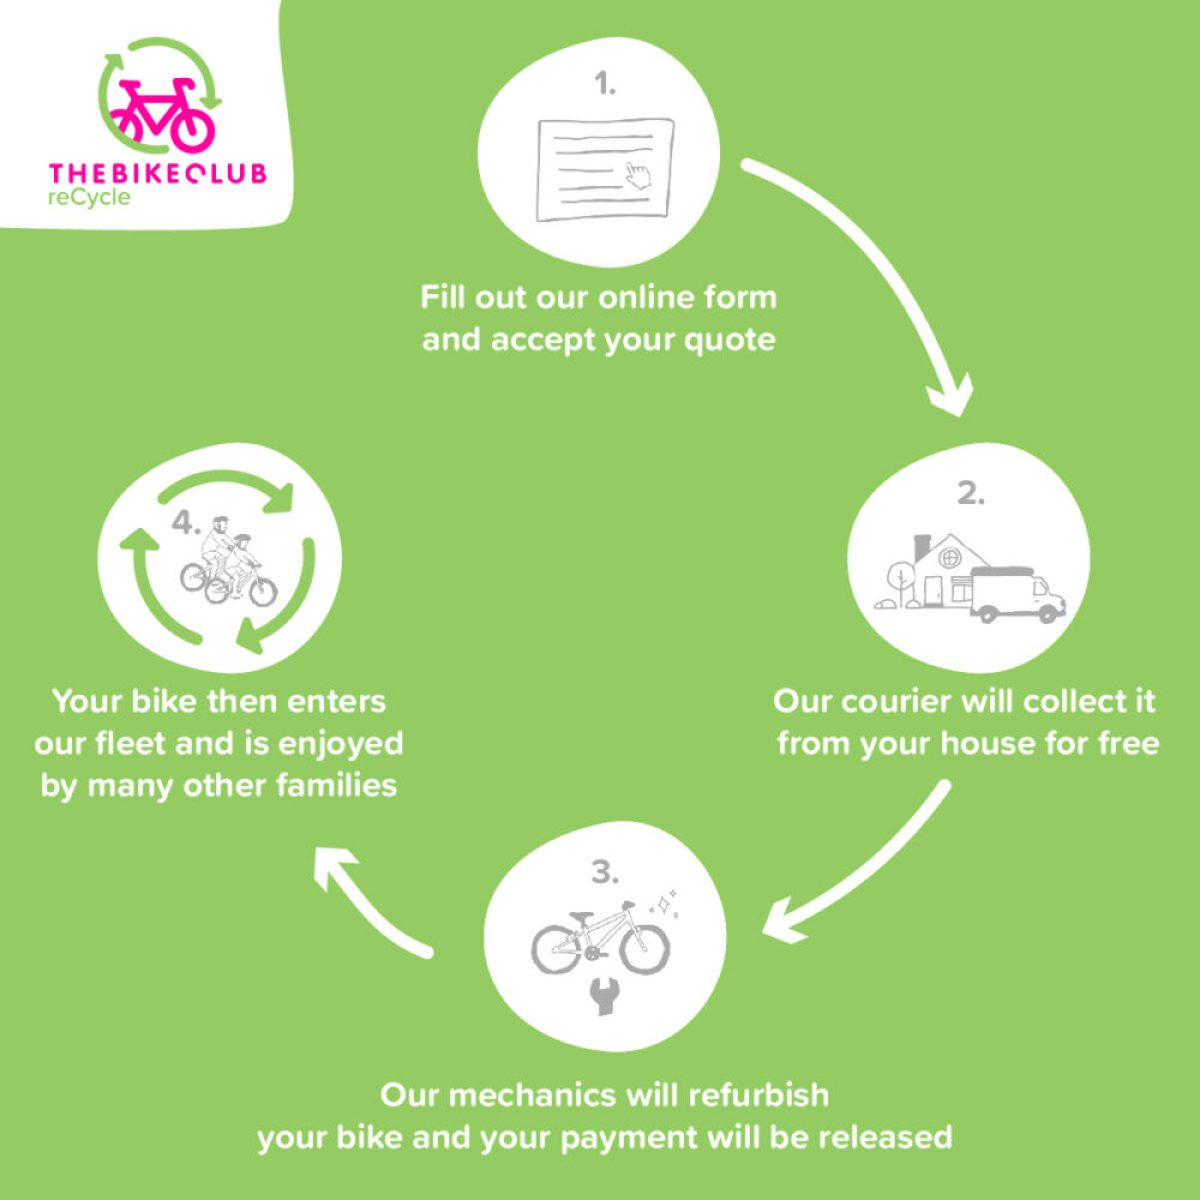 How does the Bike Club reCycle scheme work?